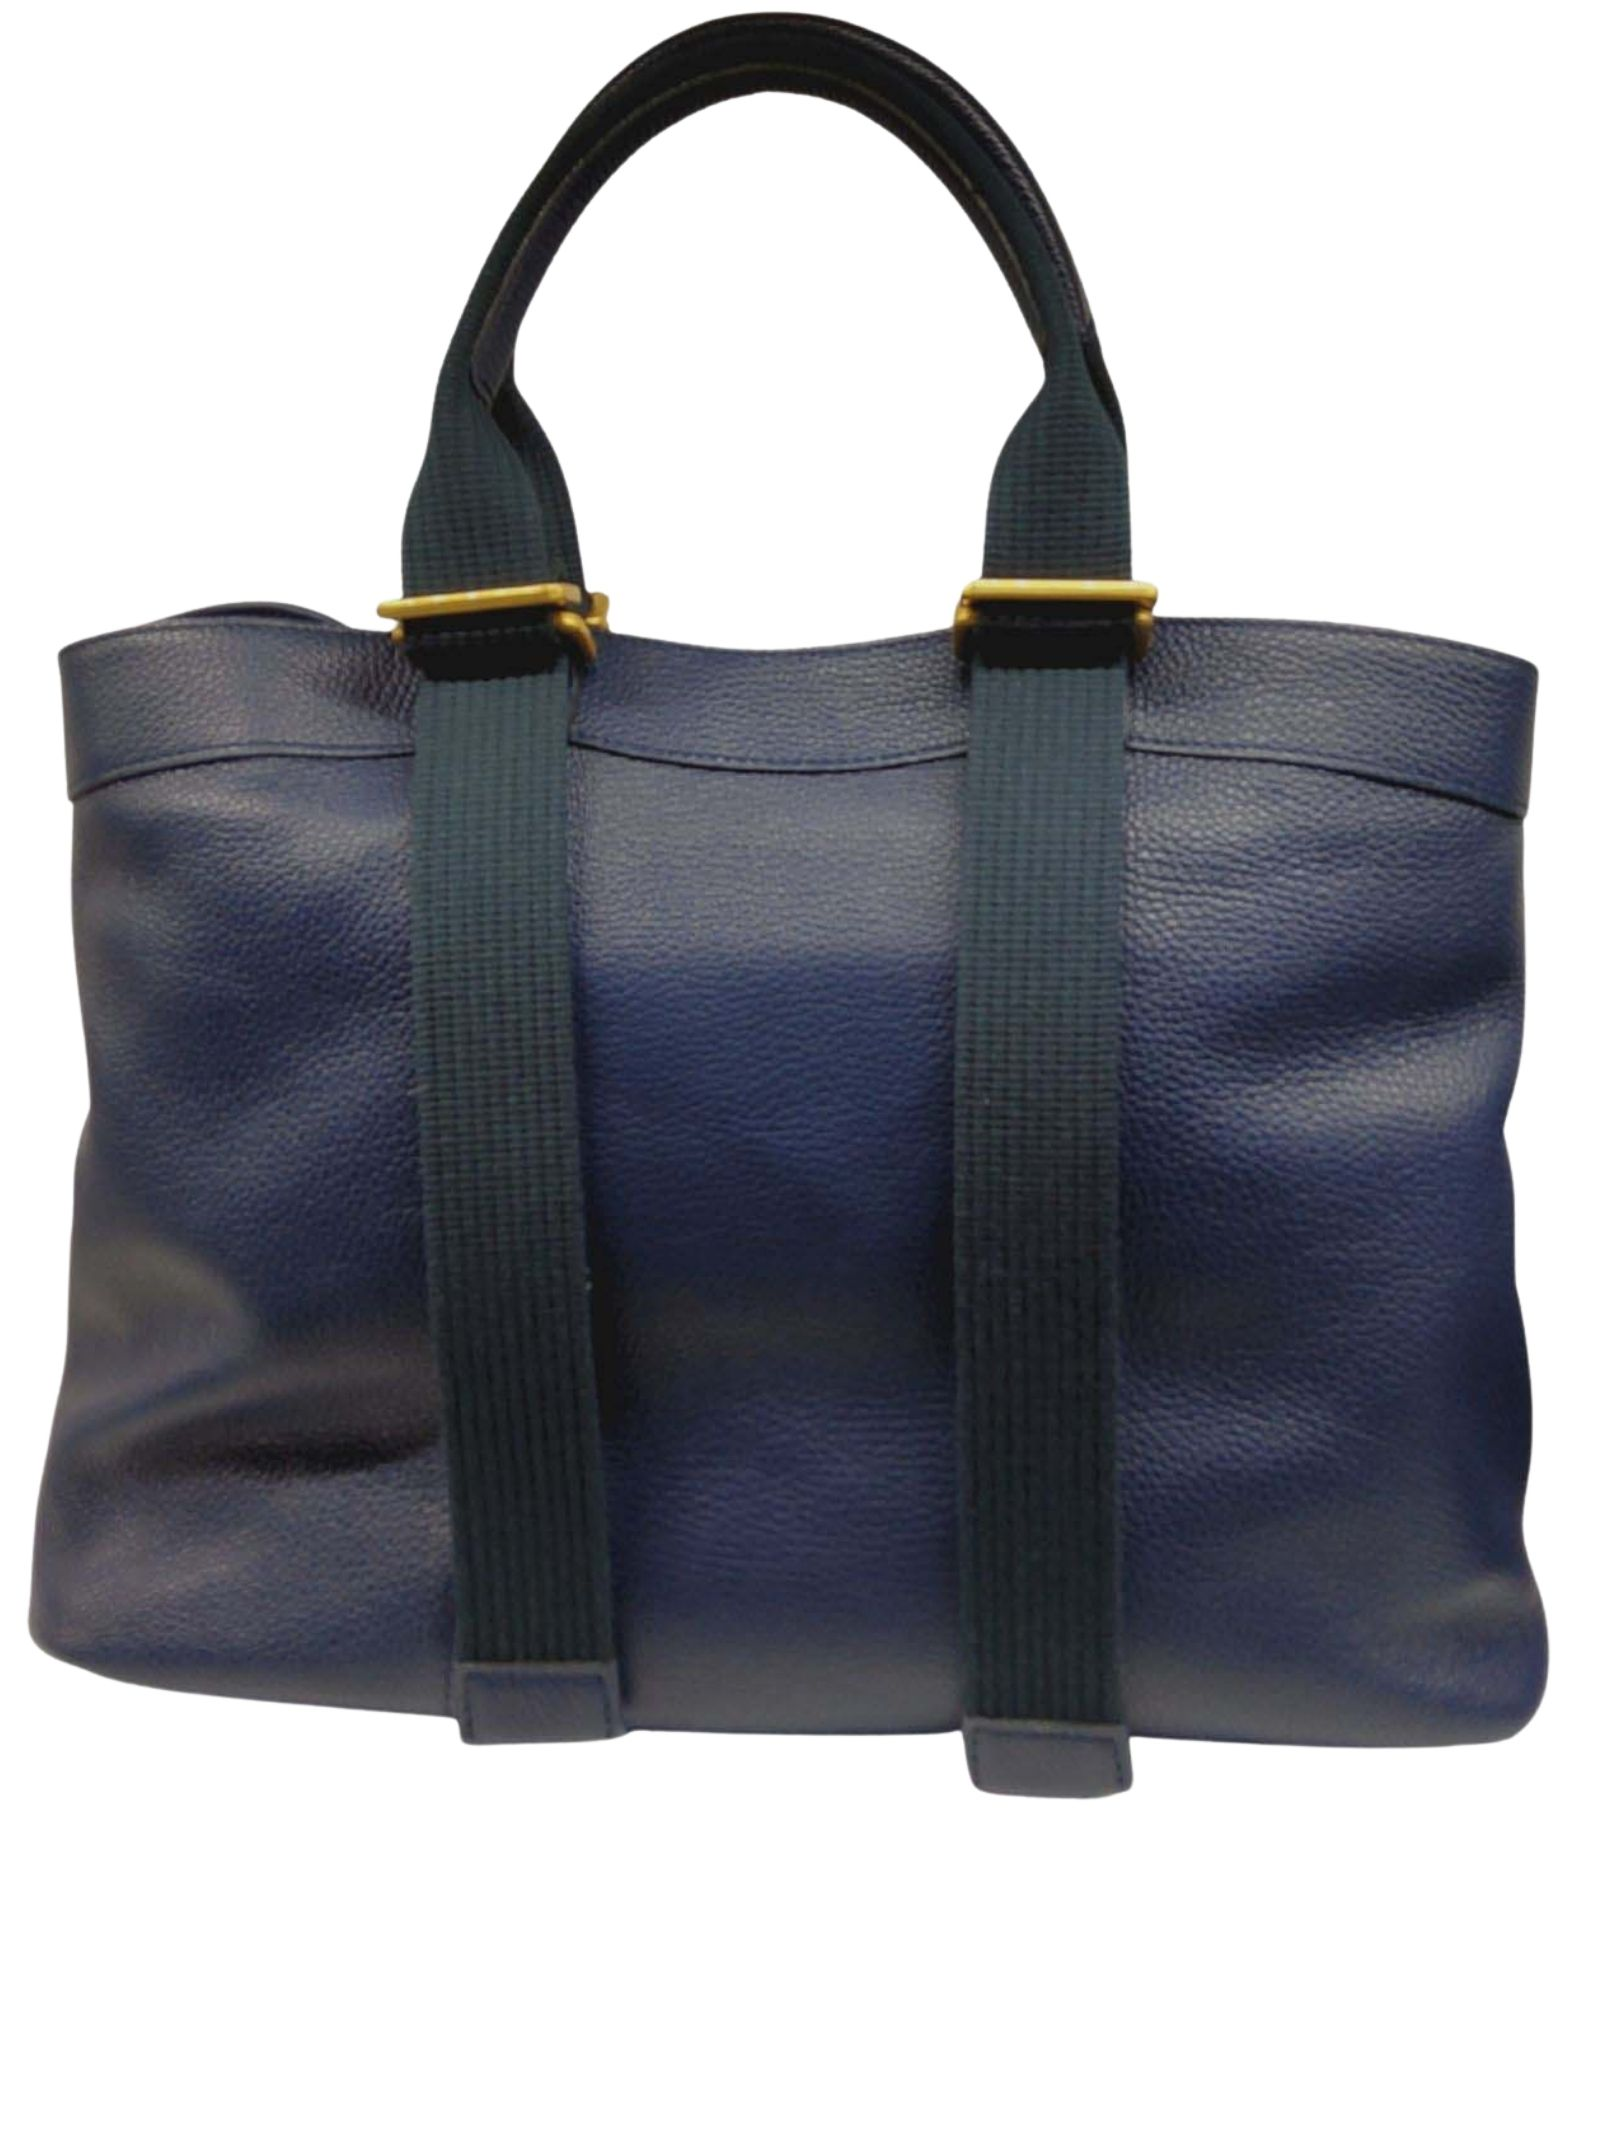 Amaranta Women's Shoulder Bag In Navy Blue Leather With Tone On Tone Adjustable Handles Gianni Chiarini   Bags and backpacks   BS85200208